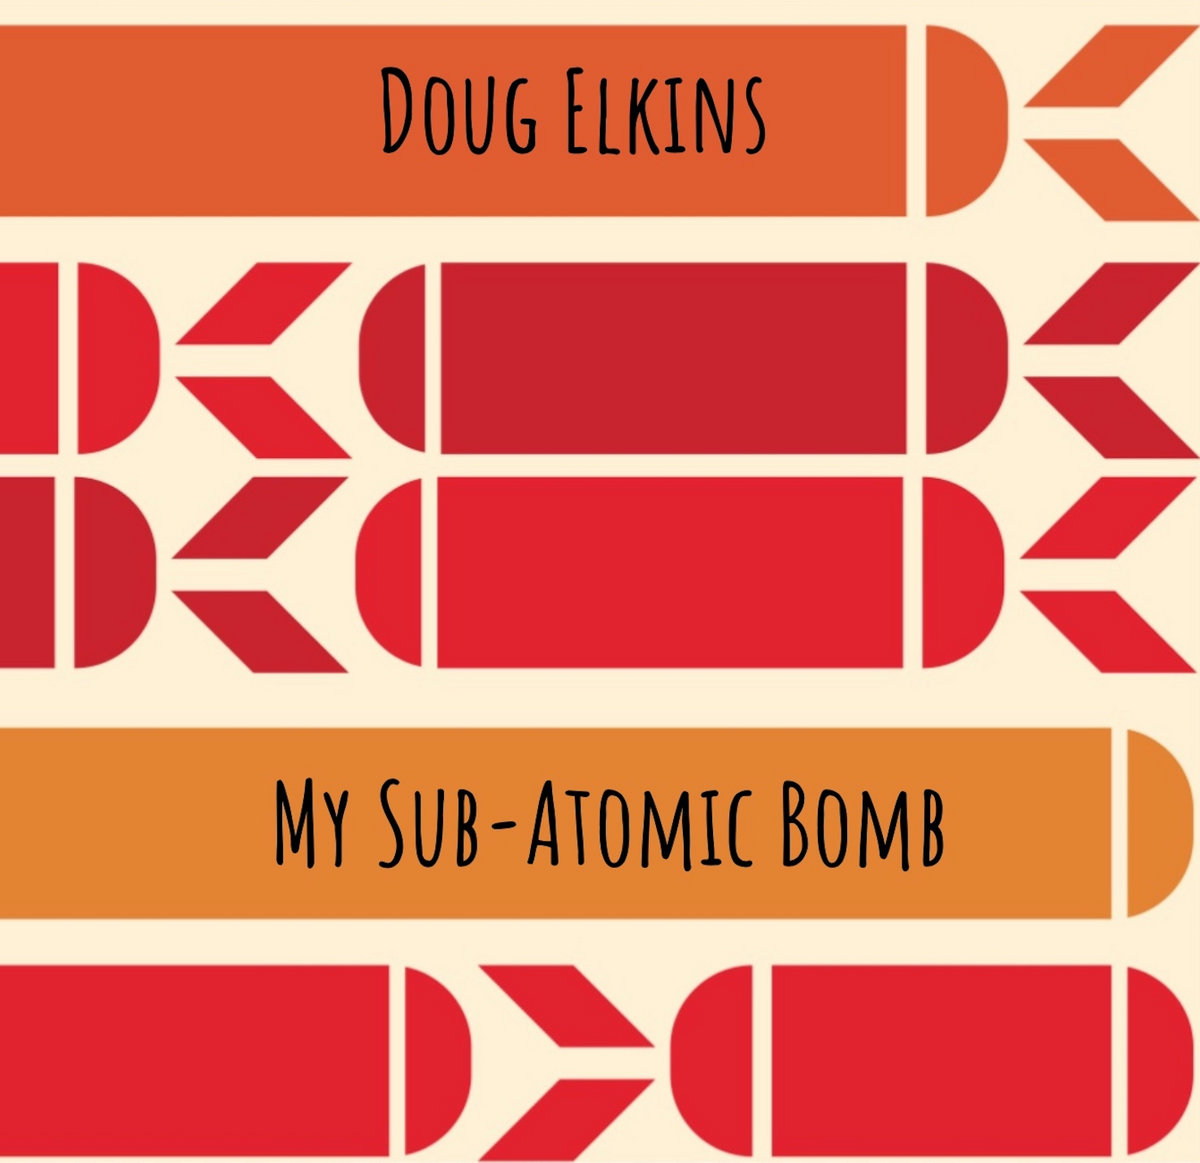 My Sub-Atomic Bomb by Doug Elkins